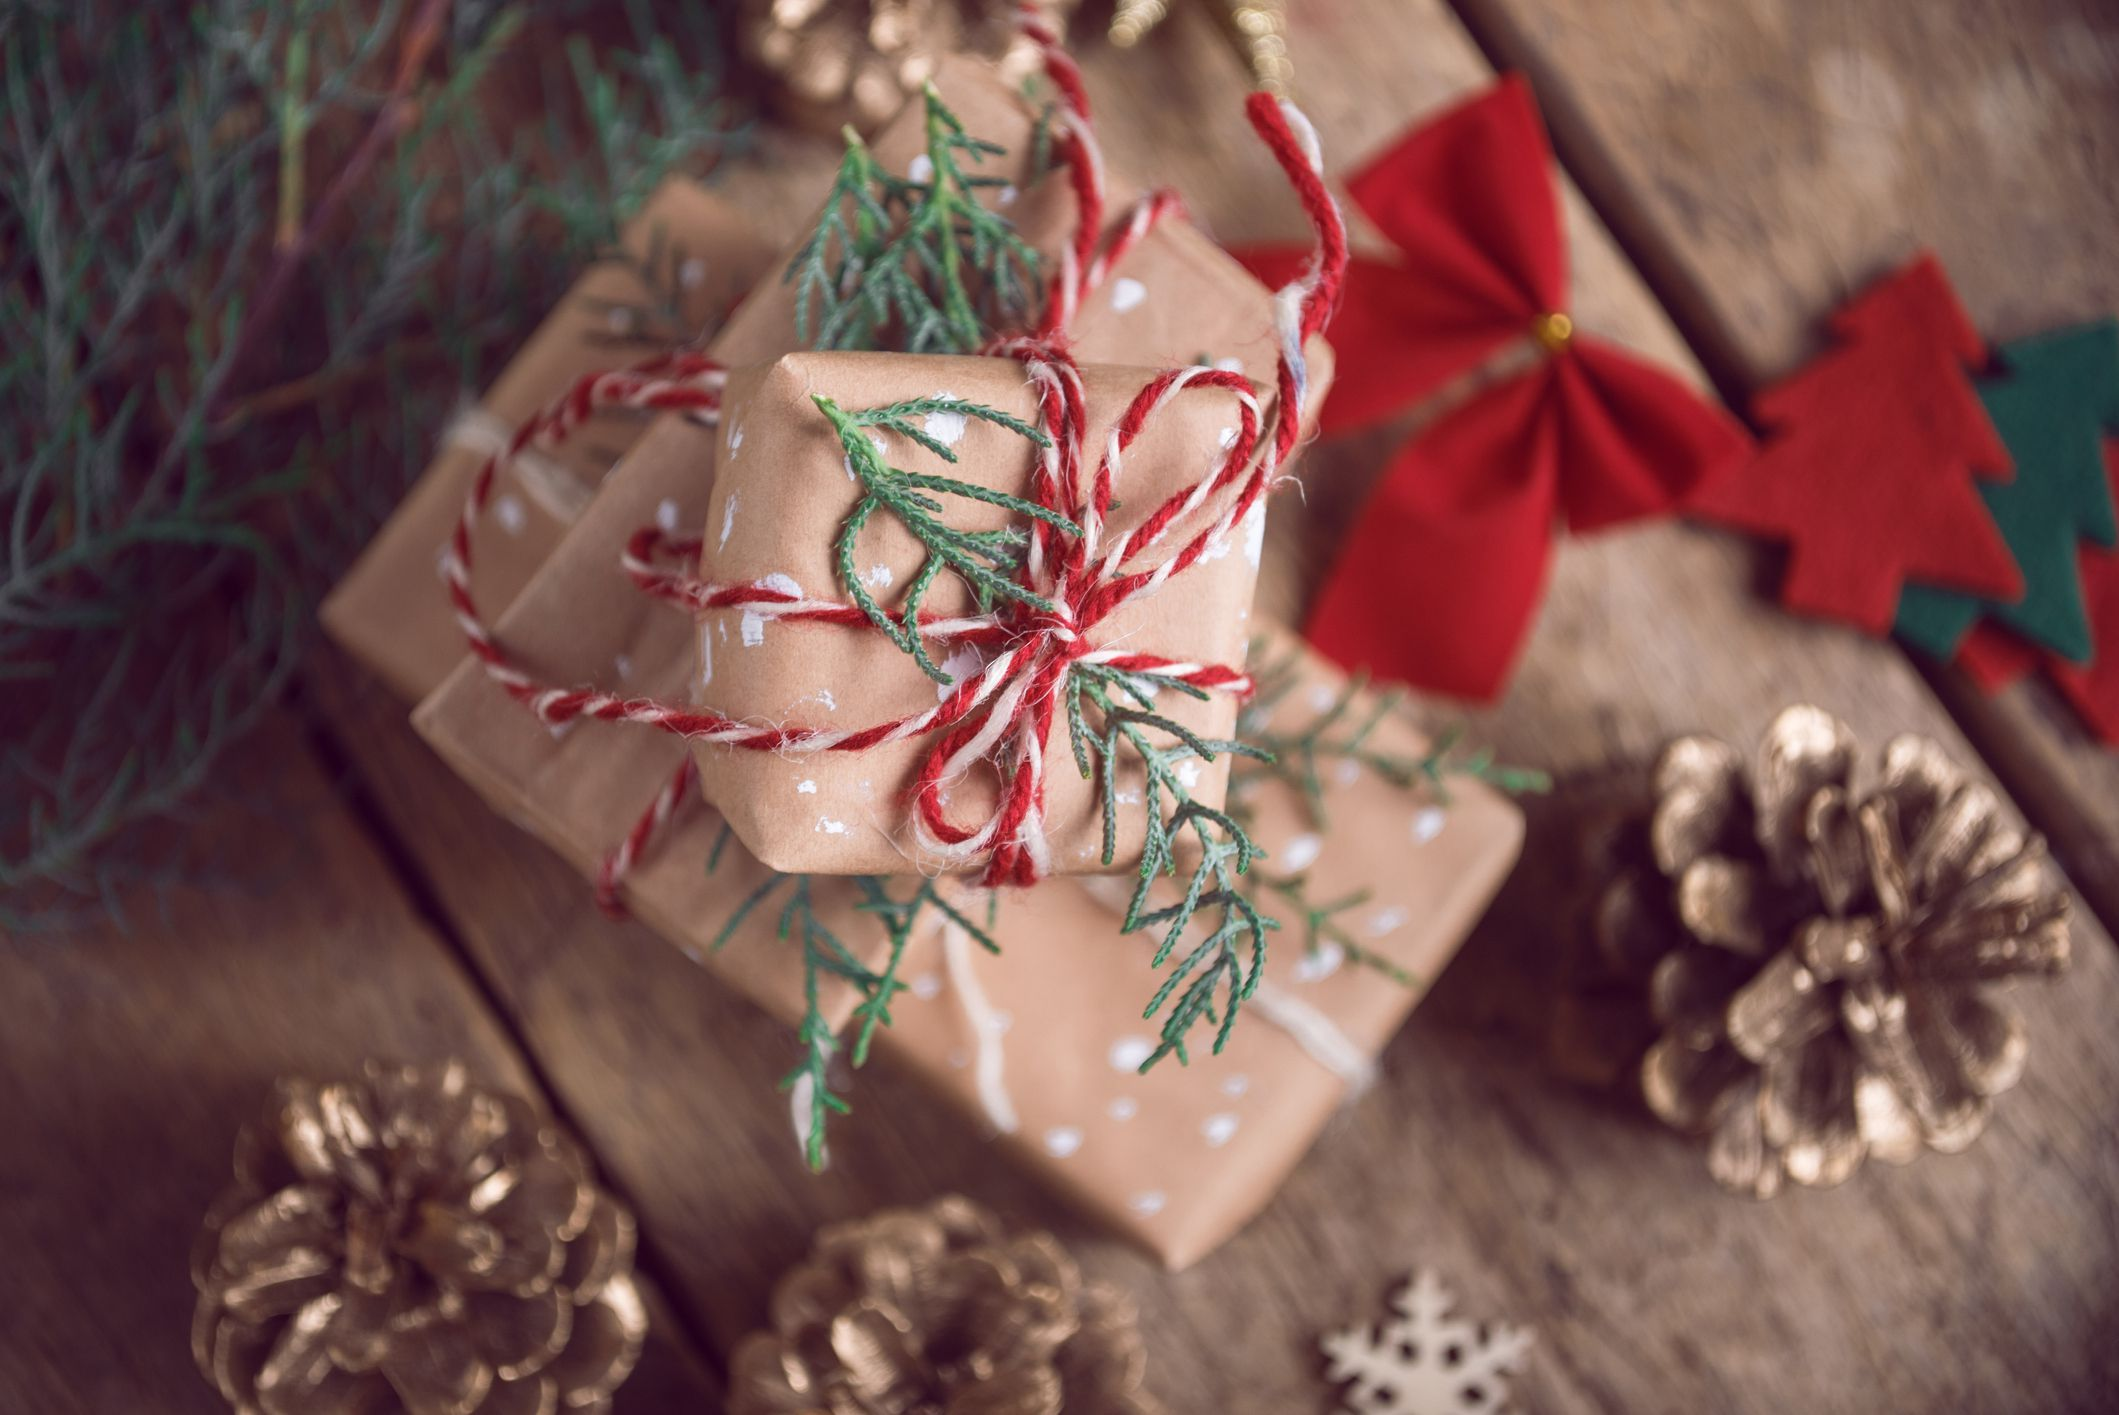 Christmasgifts-GettyImages-623081412-5be8e7f946e0fb0051eec793